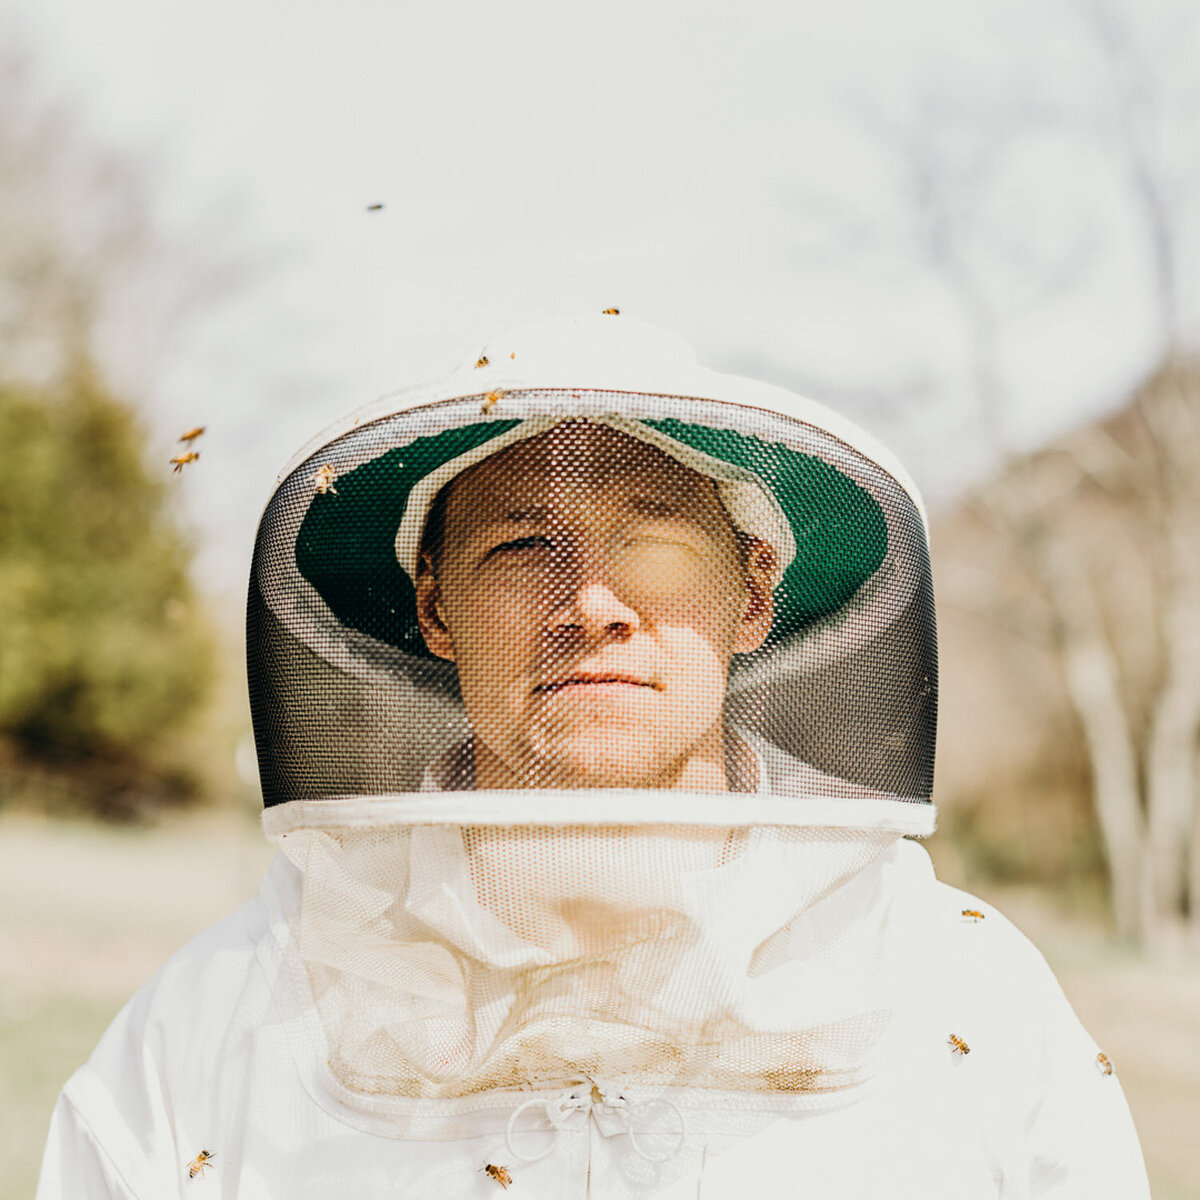 nashville-portrait-photographer-beekeeper